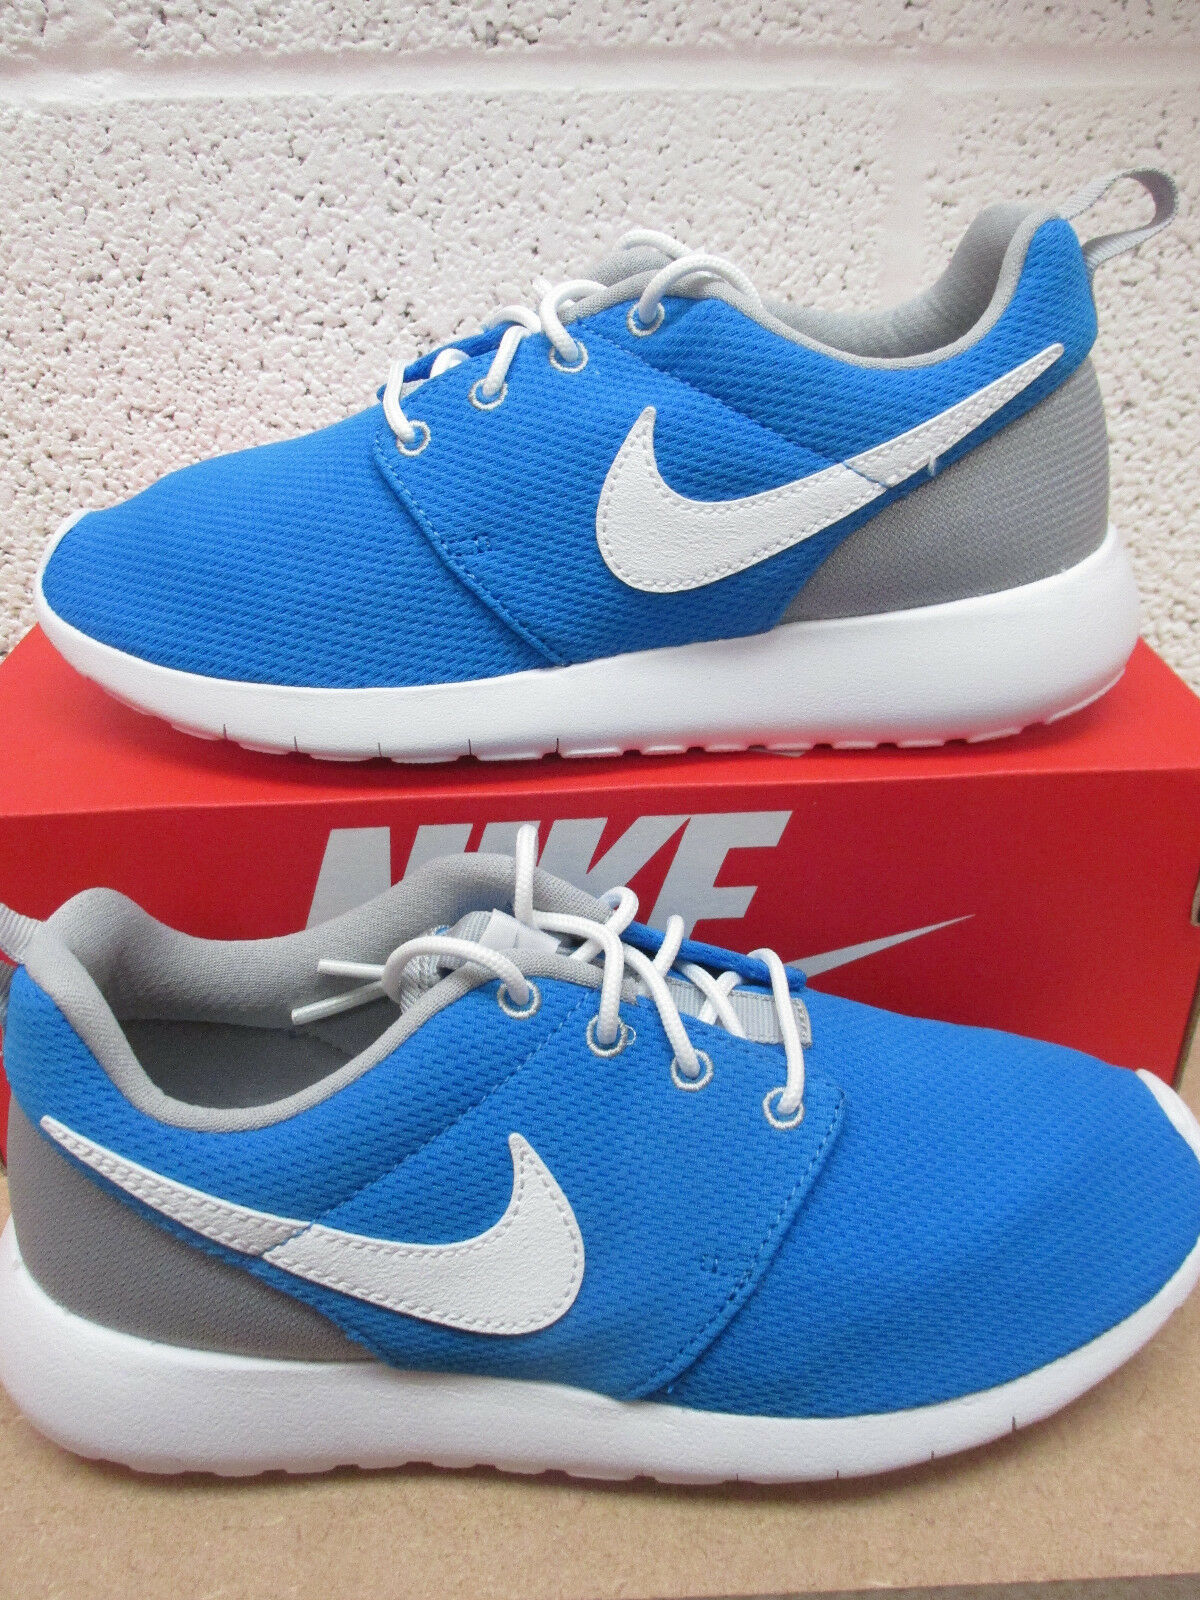 nike rosherun (GS) trainers 599728 412 sneakers shoes